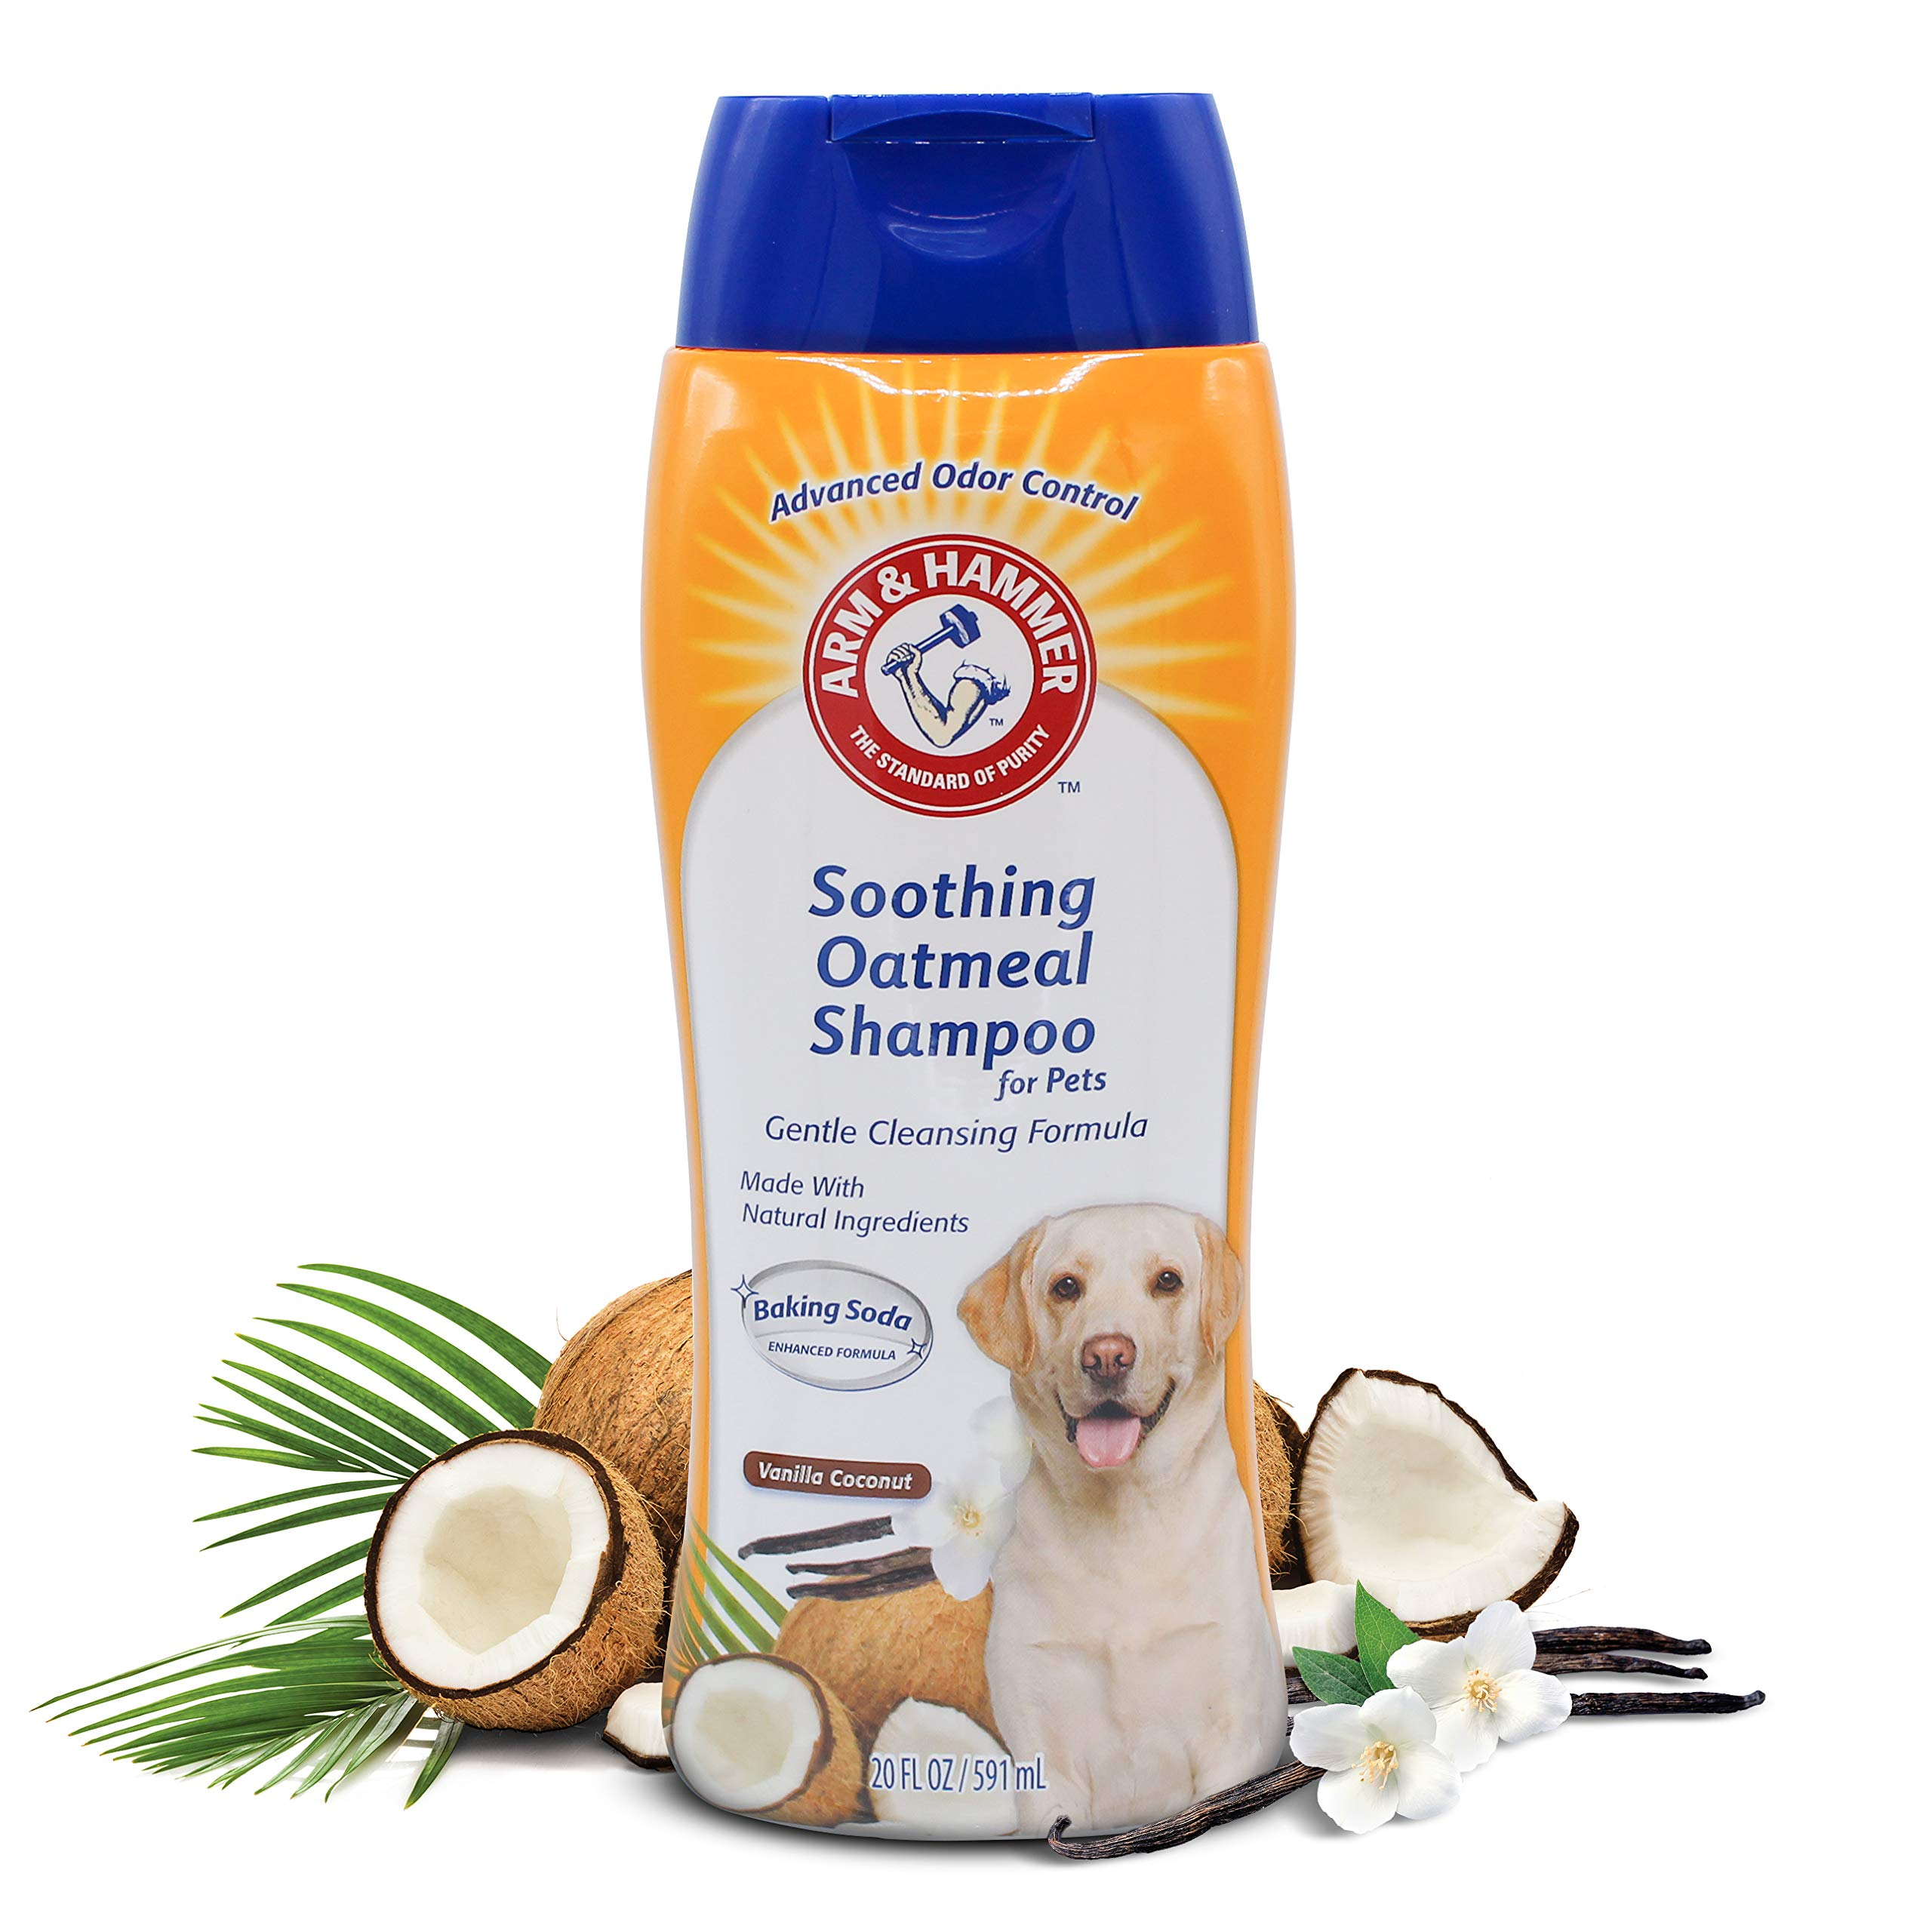 Arm & Hammer Oatmeal Shampoo for Dogs   Best Dog Shampoo for Dry Itchy Skin, Vanilla Coconut Scent, 16 oz